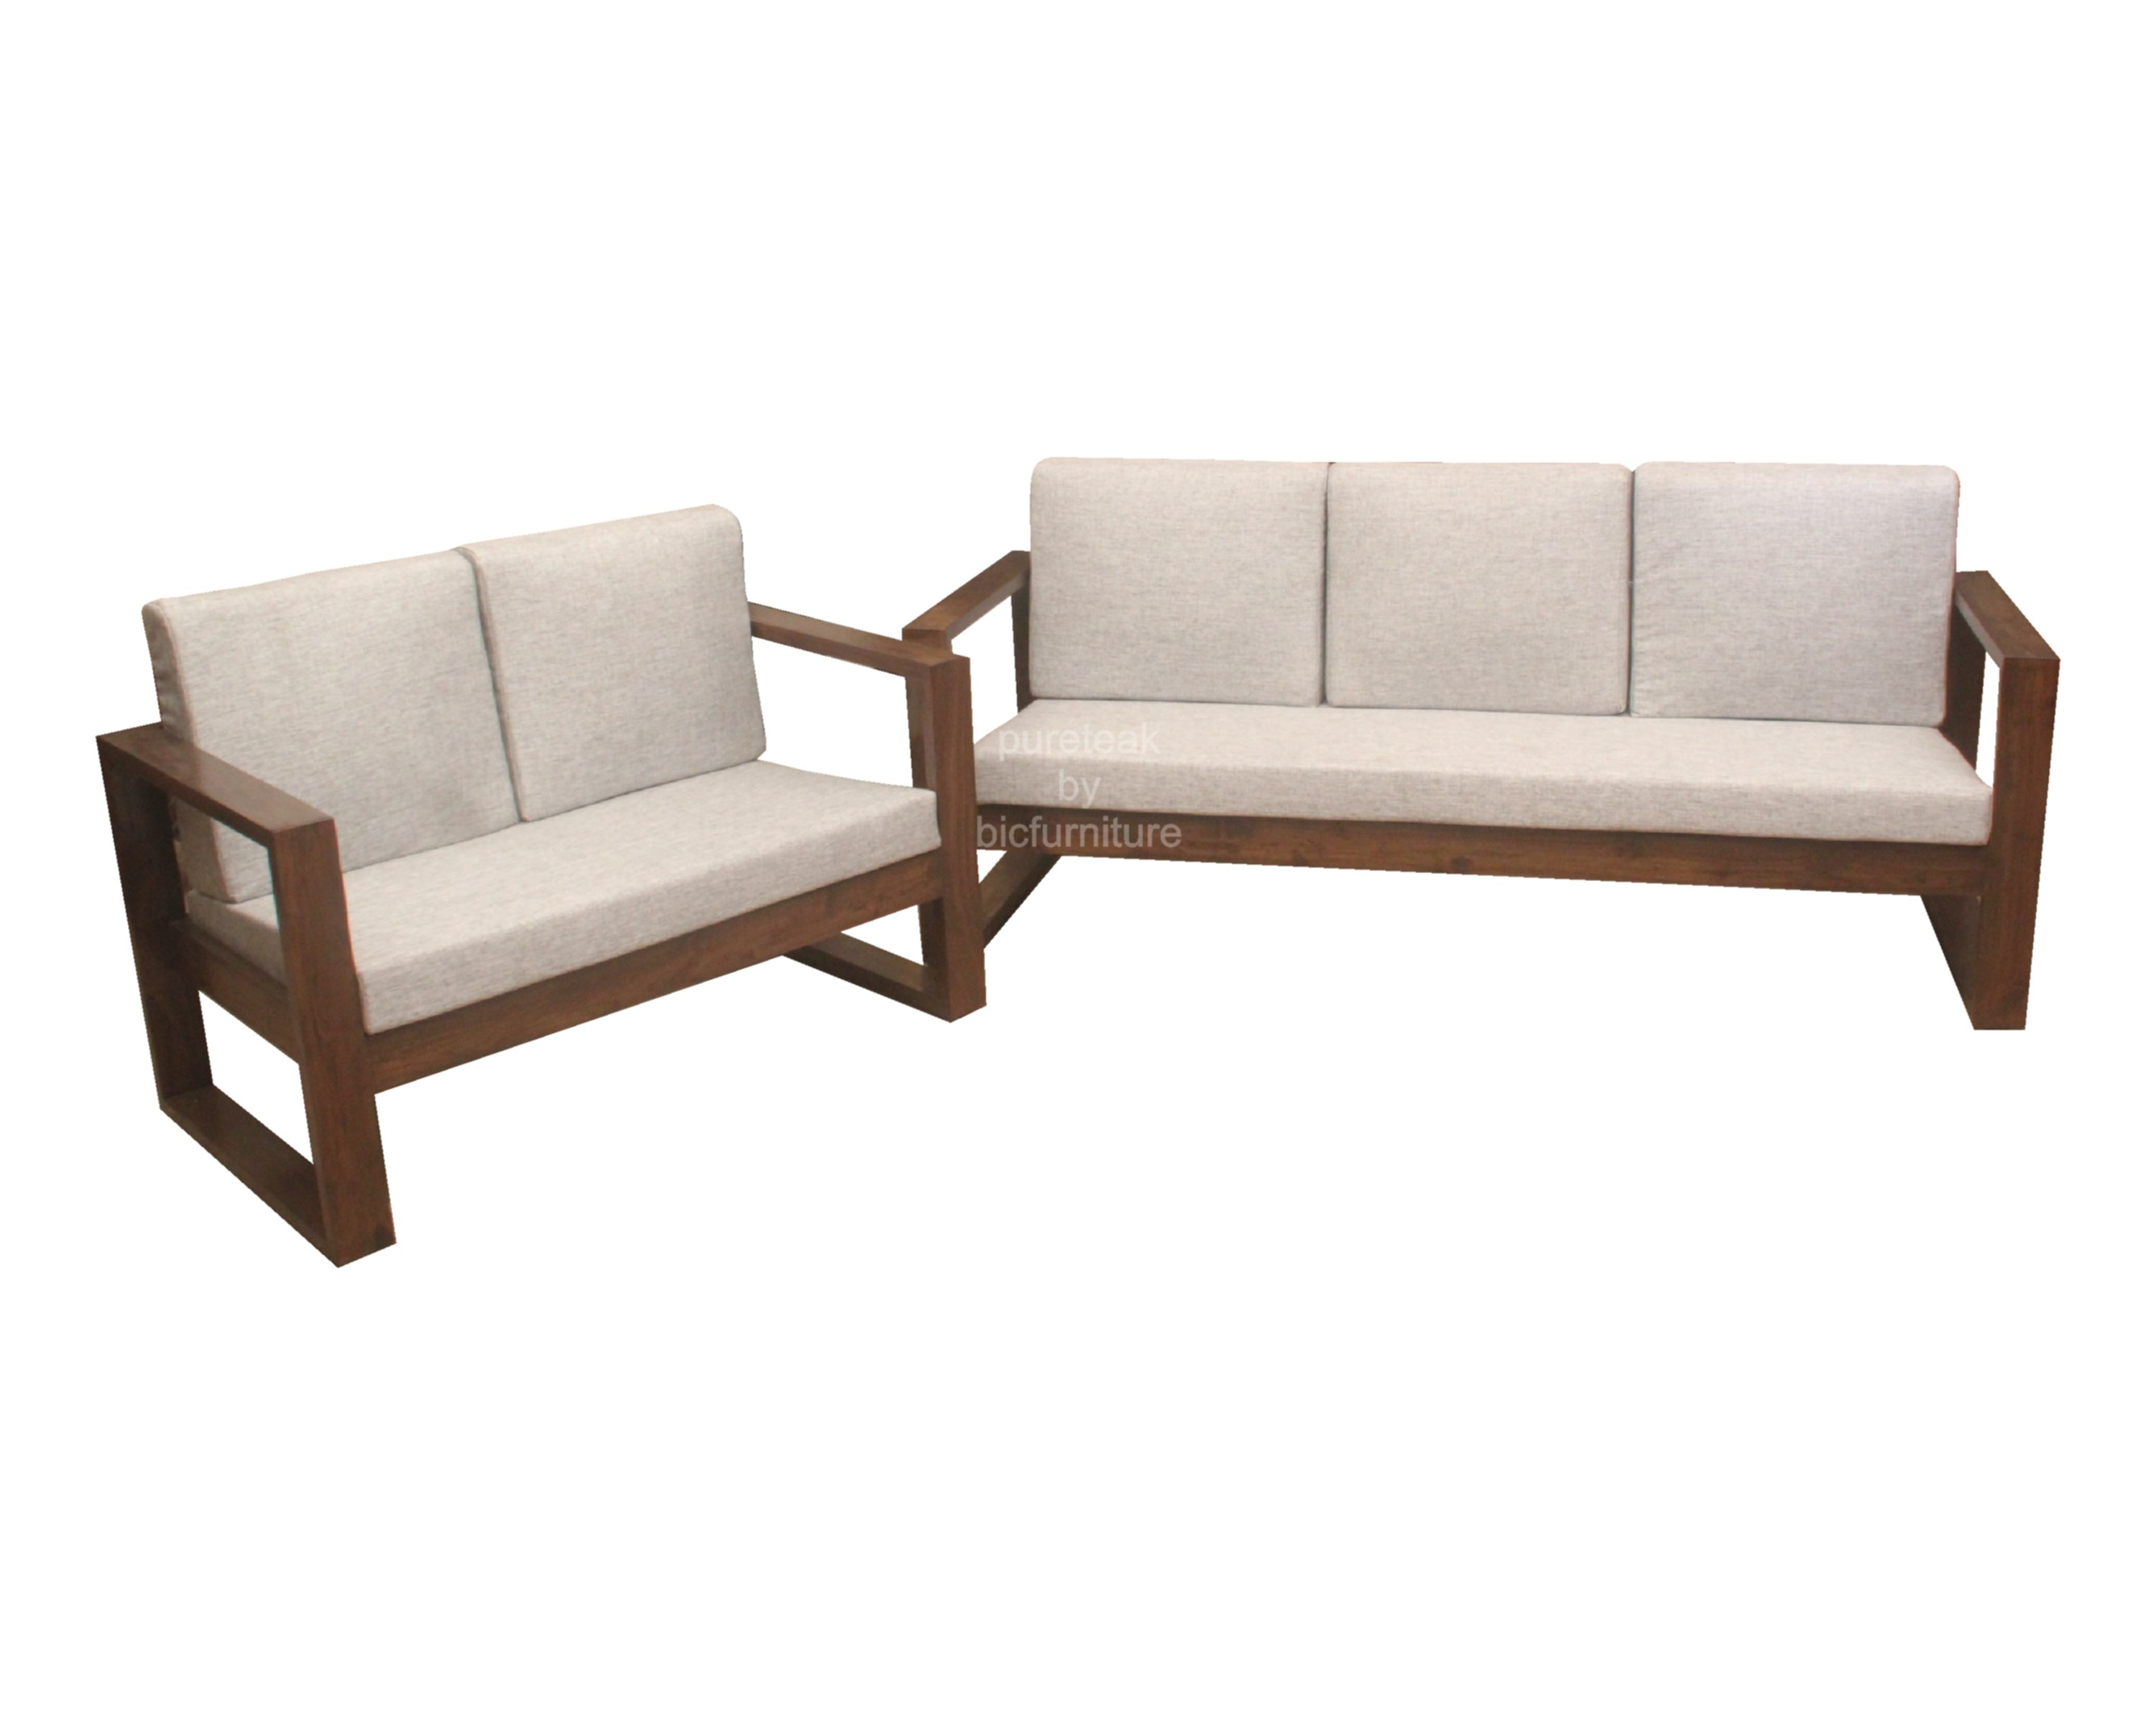 Wooden Sofa Set ~ Simple wooden sofa set designs design decoration